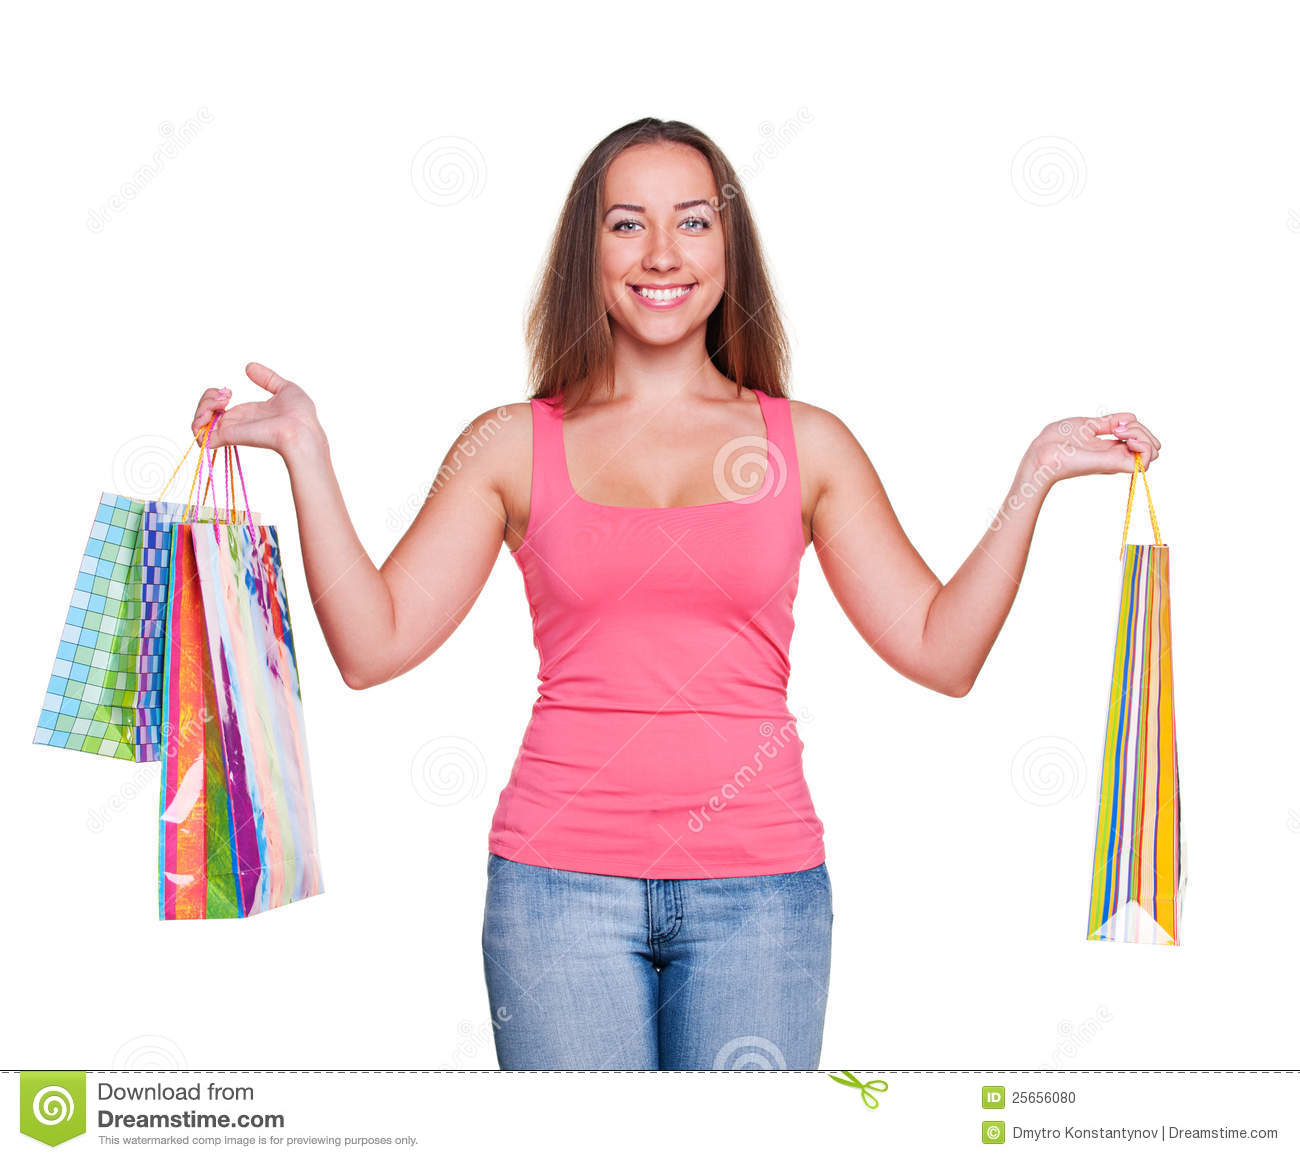 Fantastic Woman Holding Shopping Bags Royalty Free Stock Photo - Image 36388025